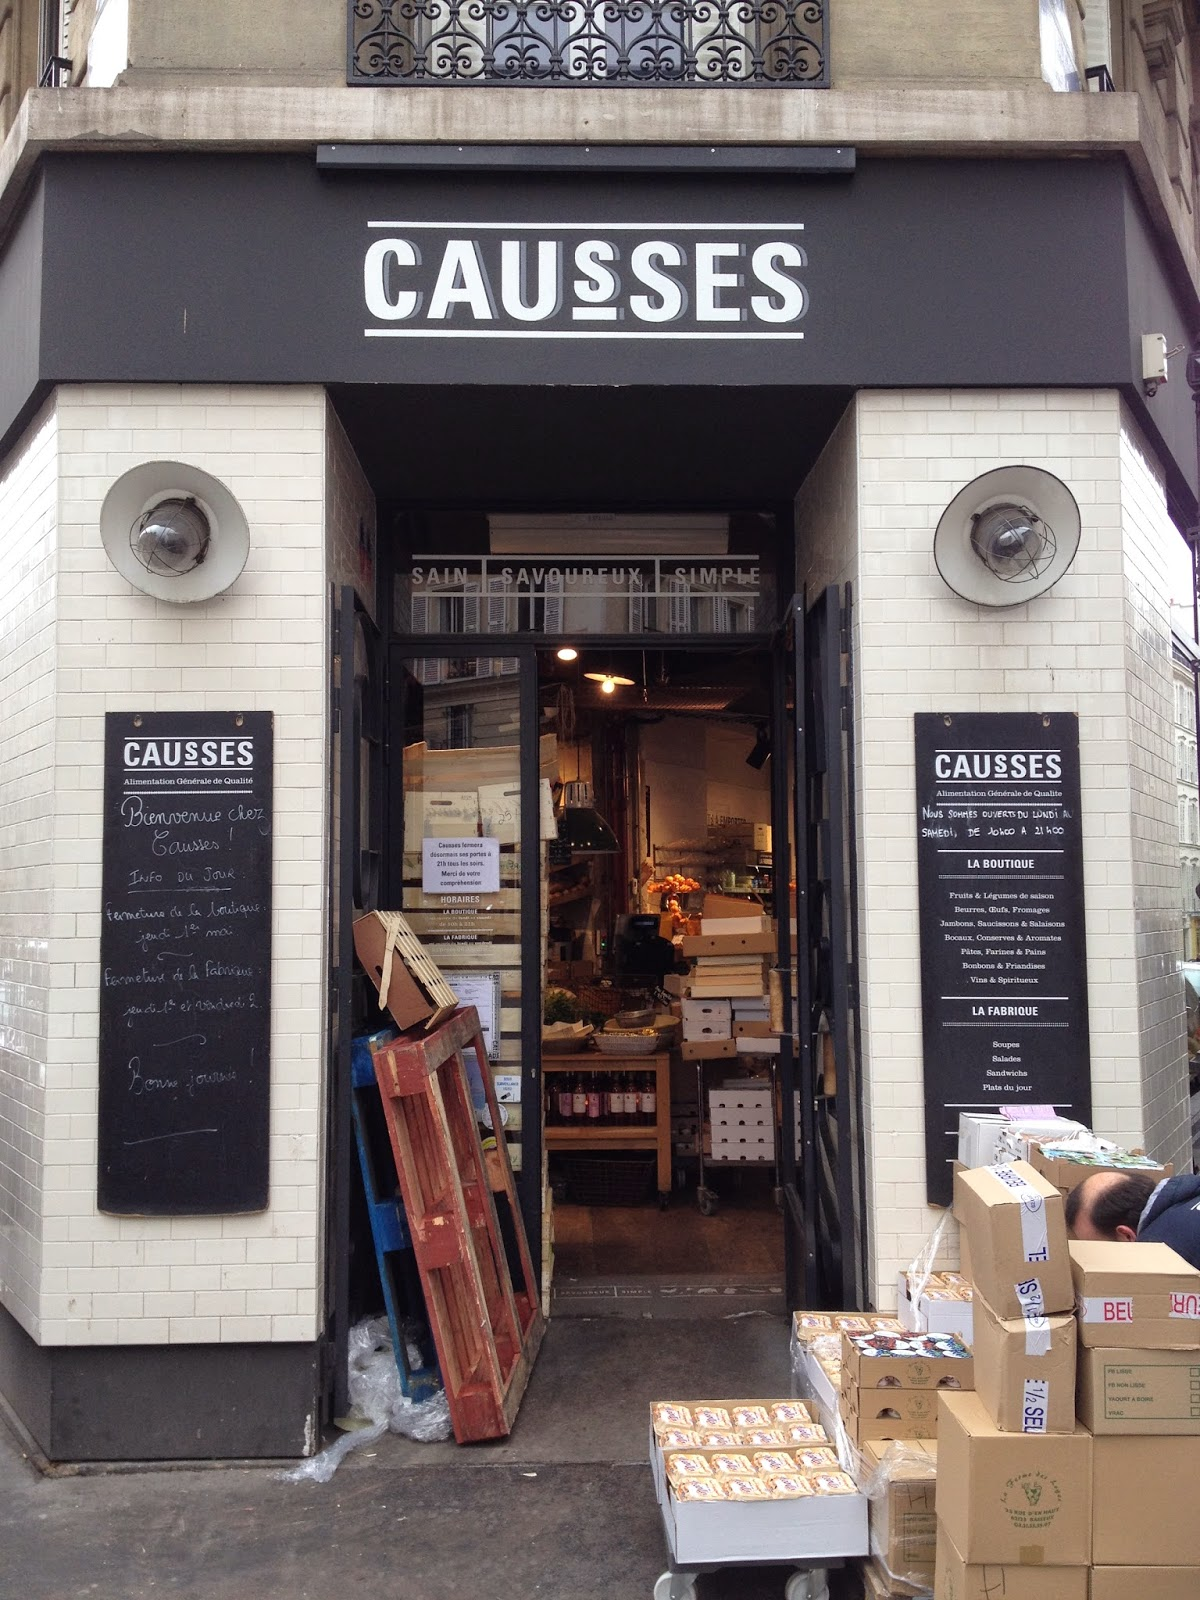 causses paris bulk en vrac sopi pigalle gluten-free local